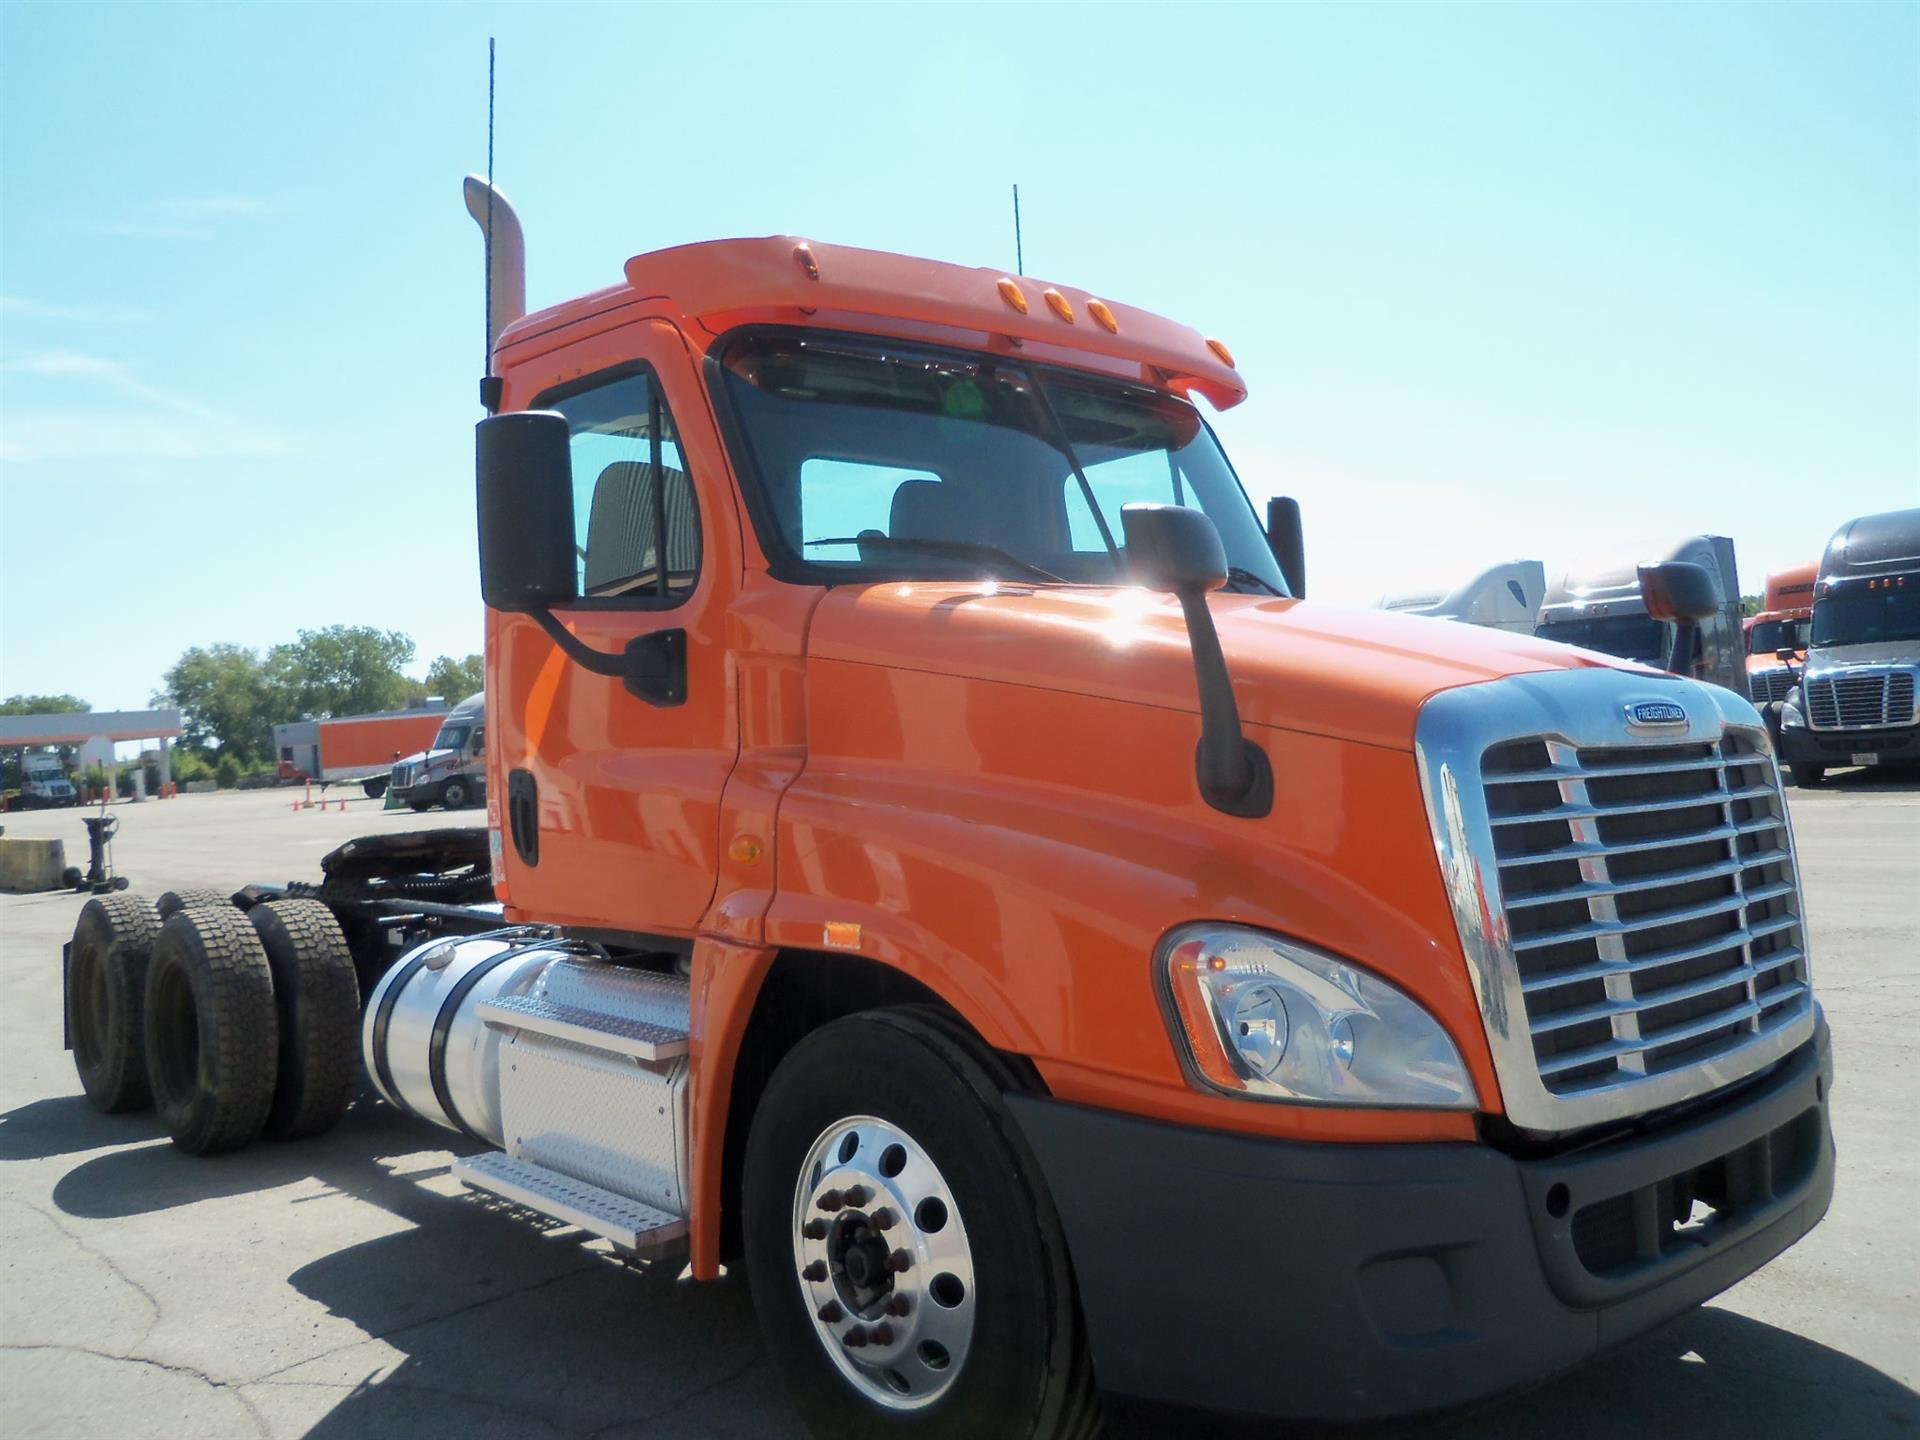 USED 2013 FREIGHTLINER CASCADIA DAYCAB TRUCK #131755